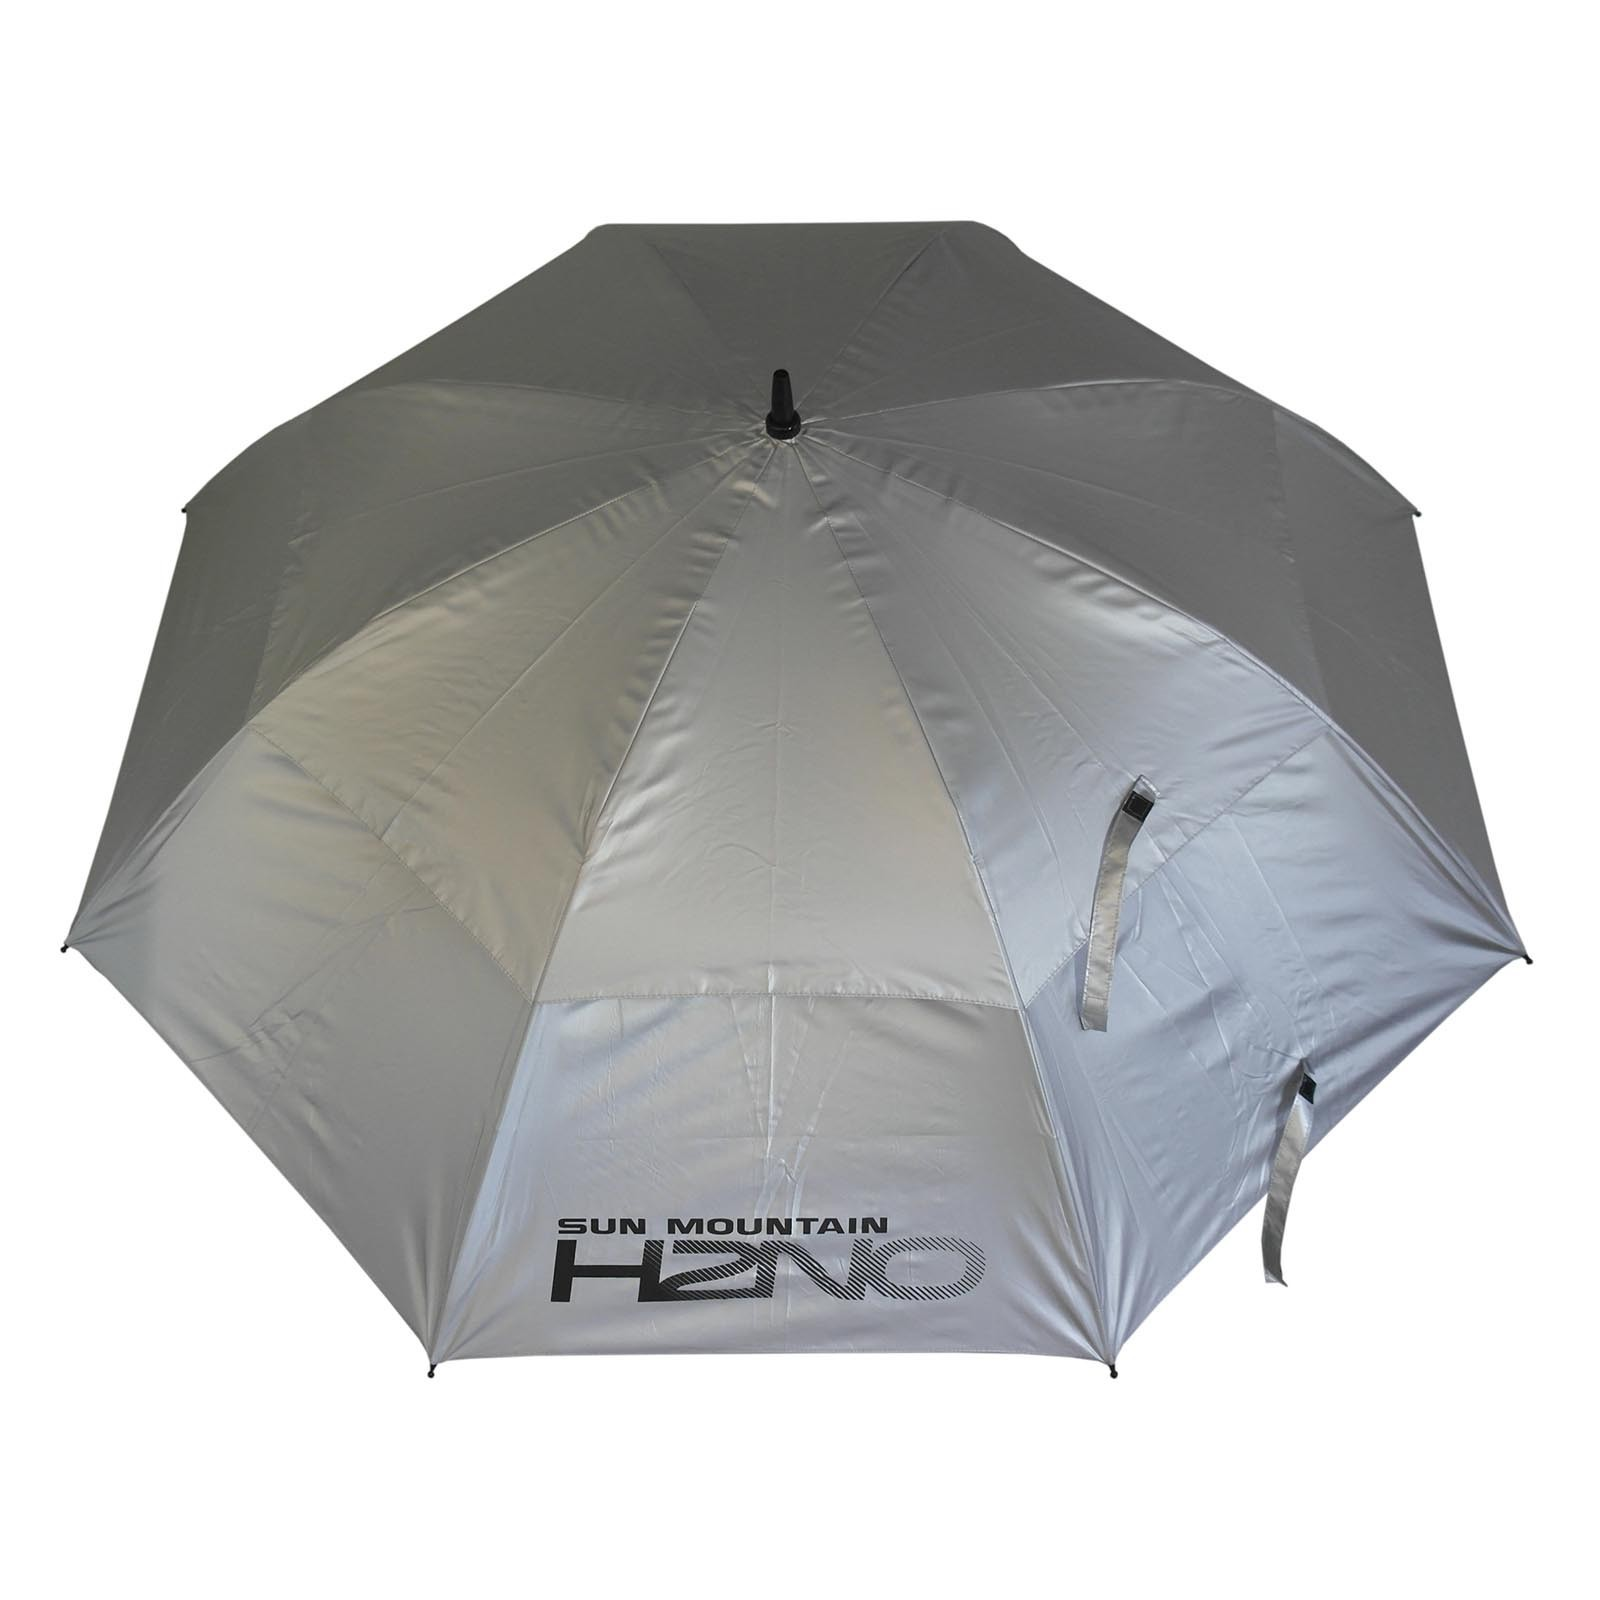 Sun Mountain UV Umbrella - 68 Inch